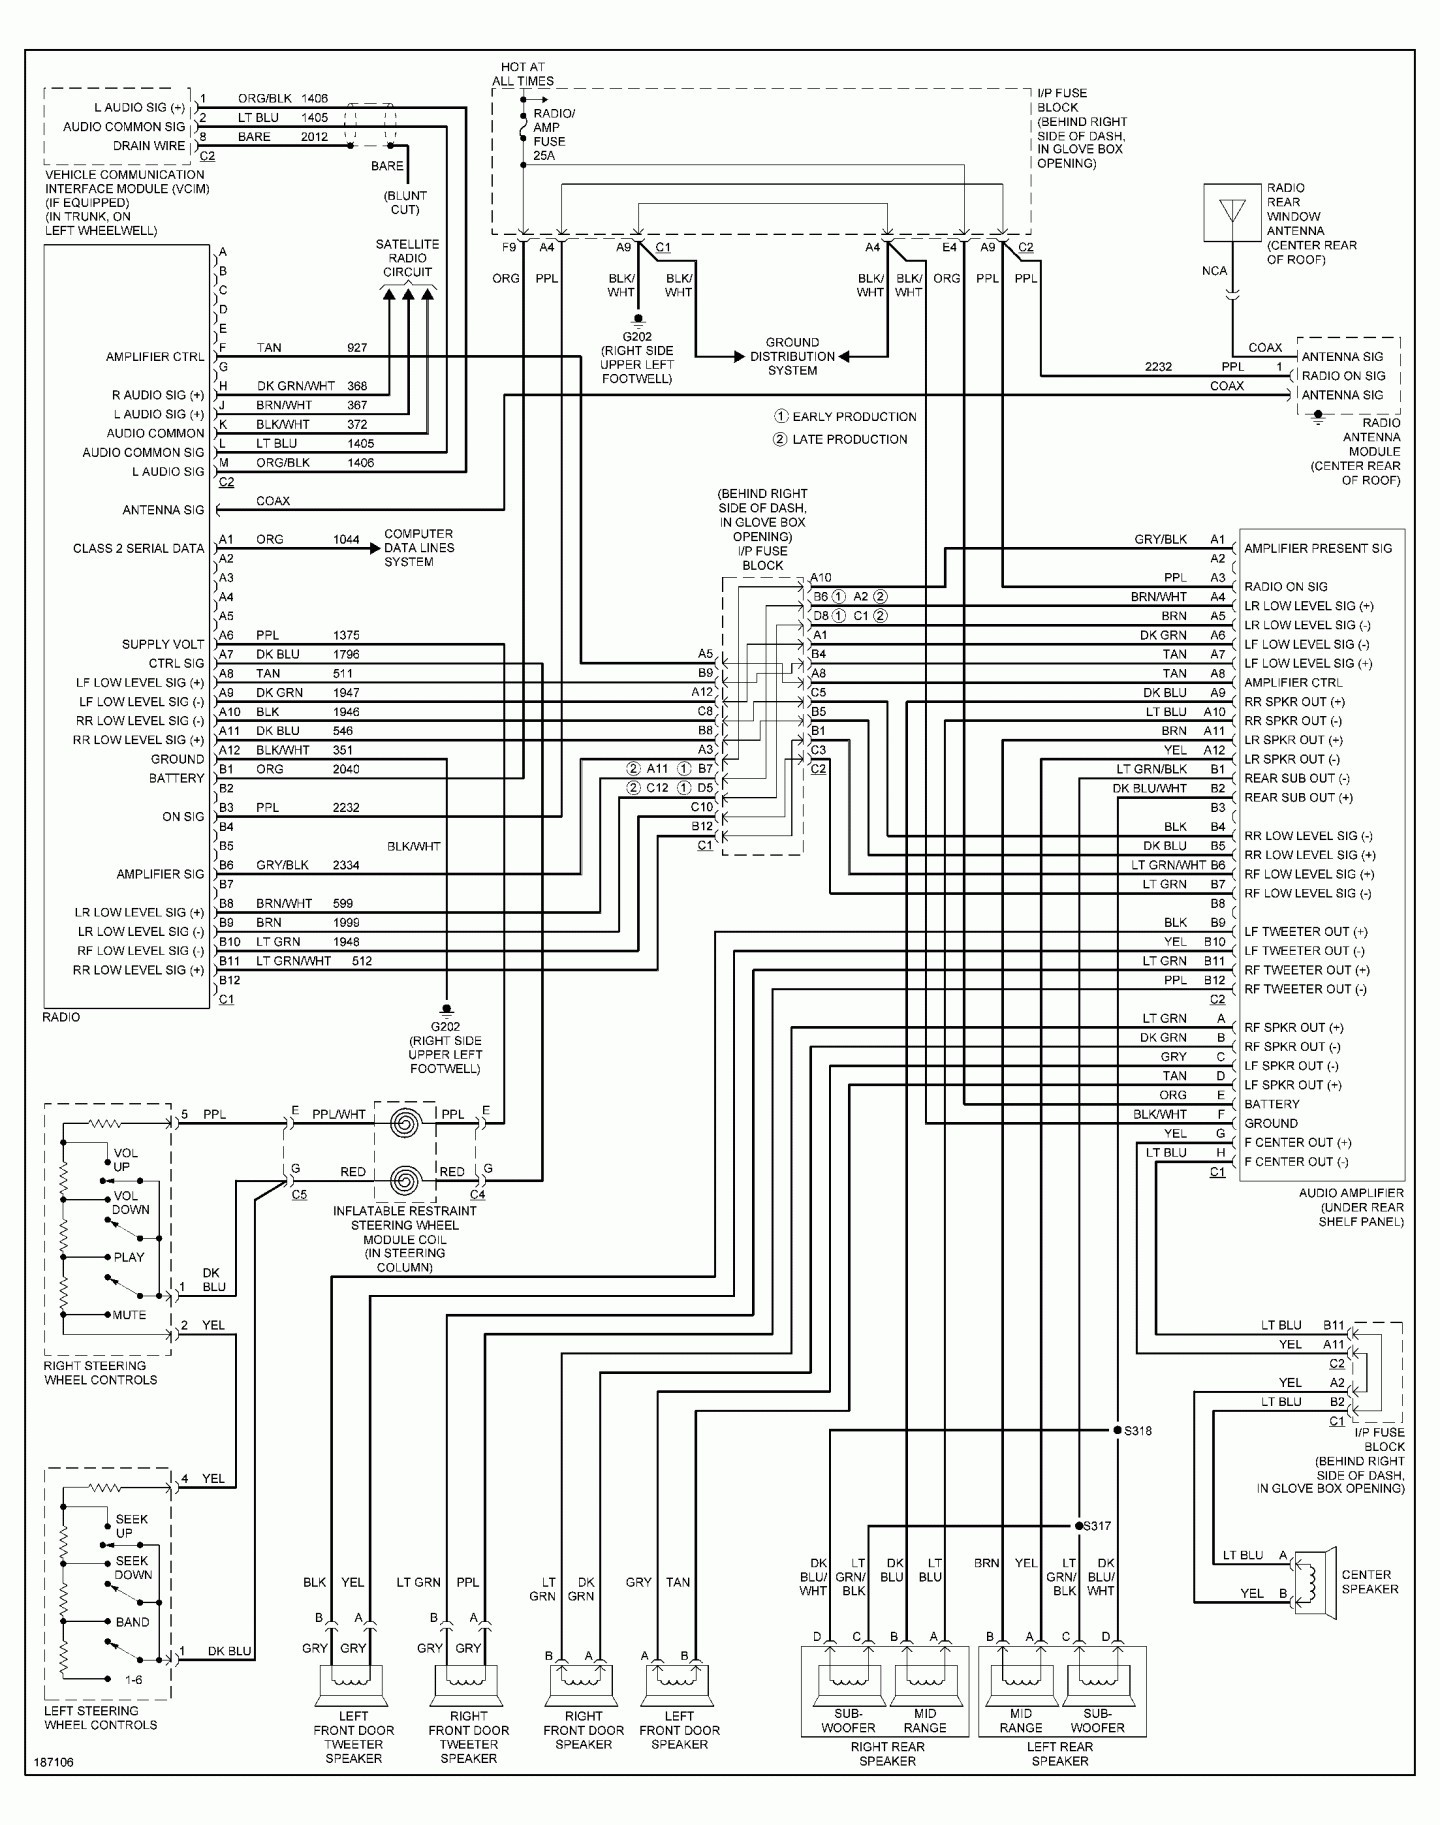 65 vw beetle wiring diagram